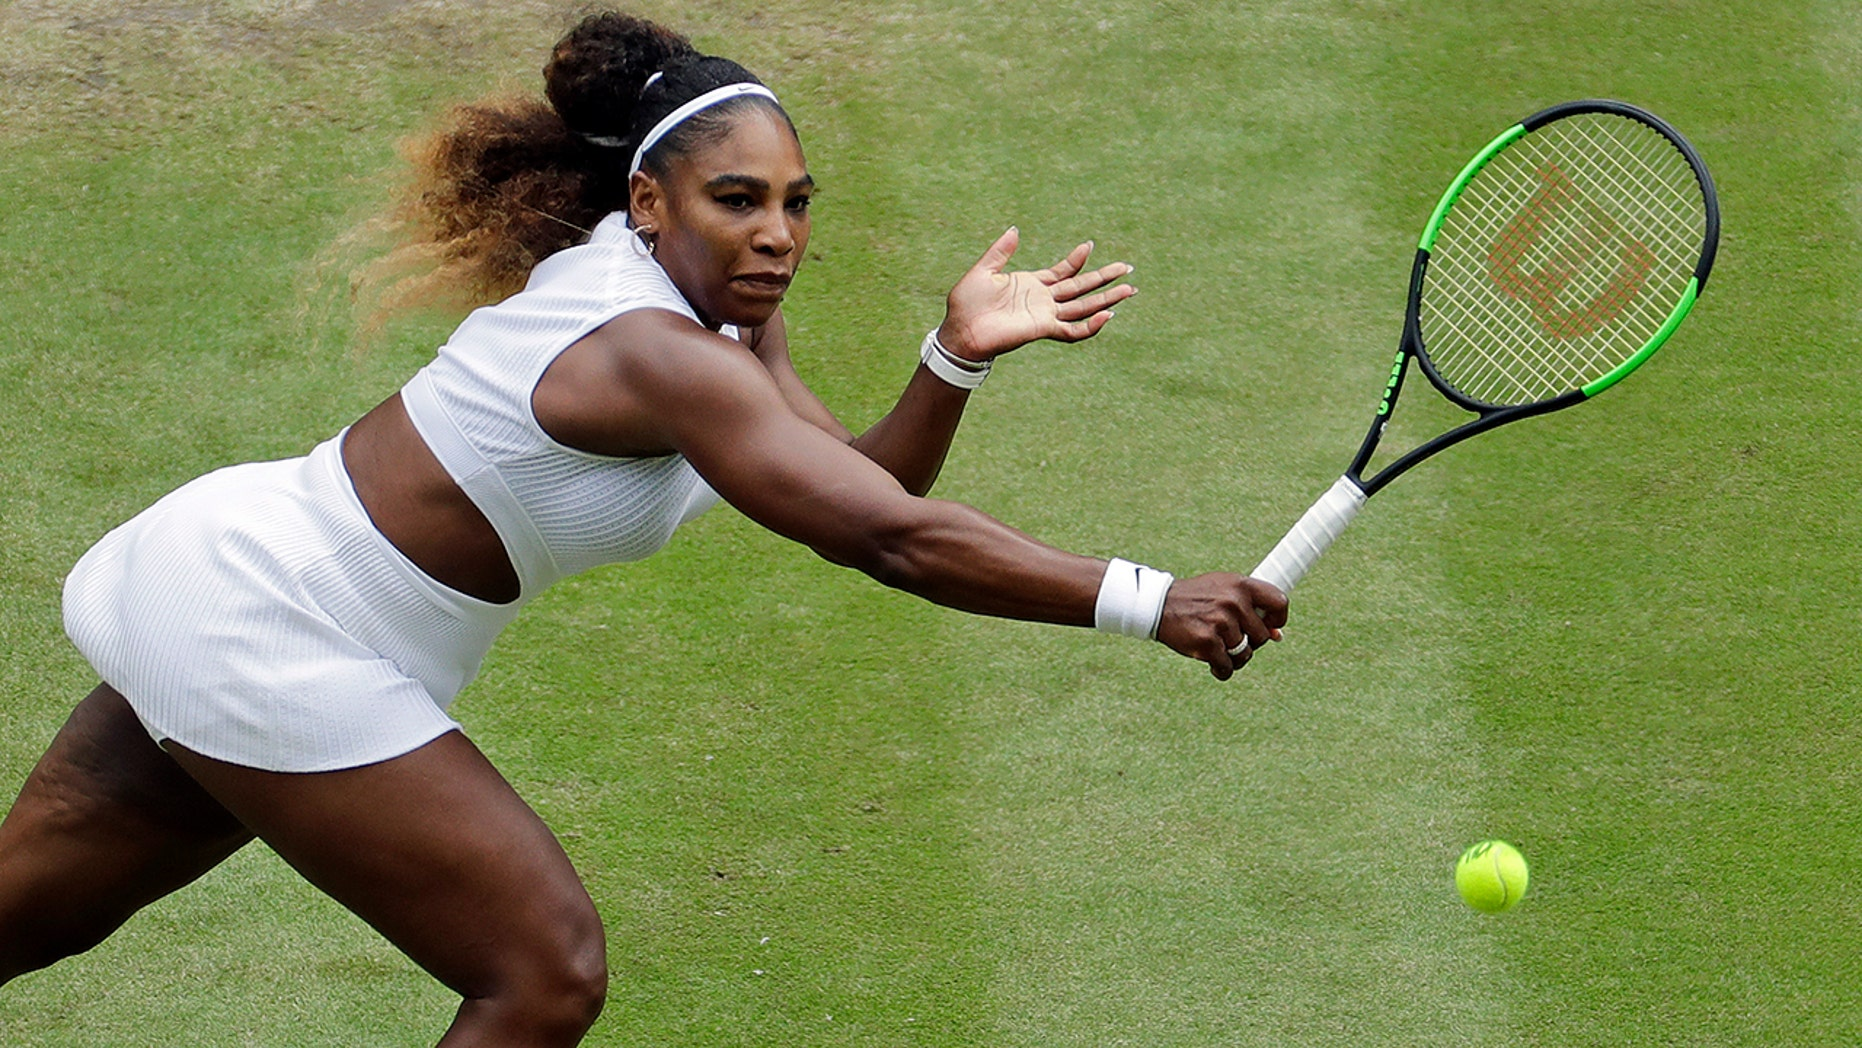 Chasing 24th grand slam title, Serena targets 'calm' space